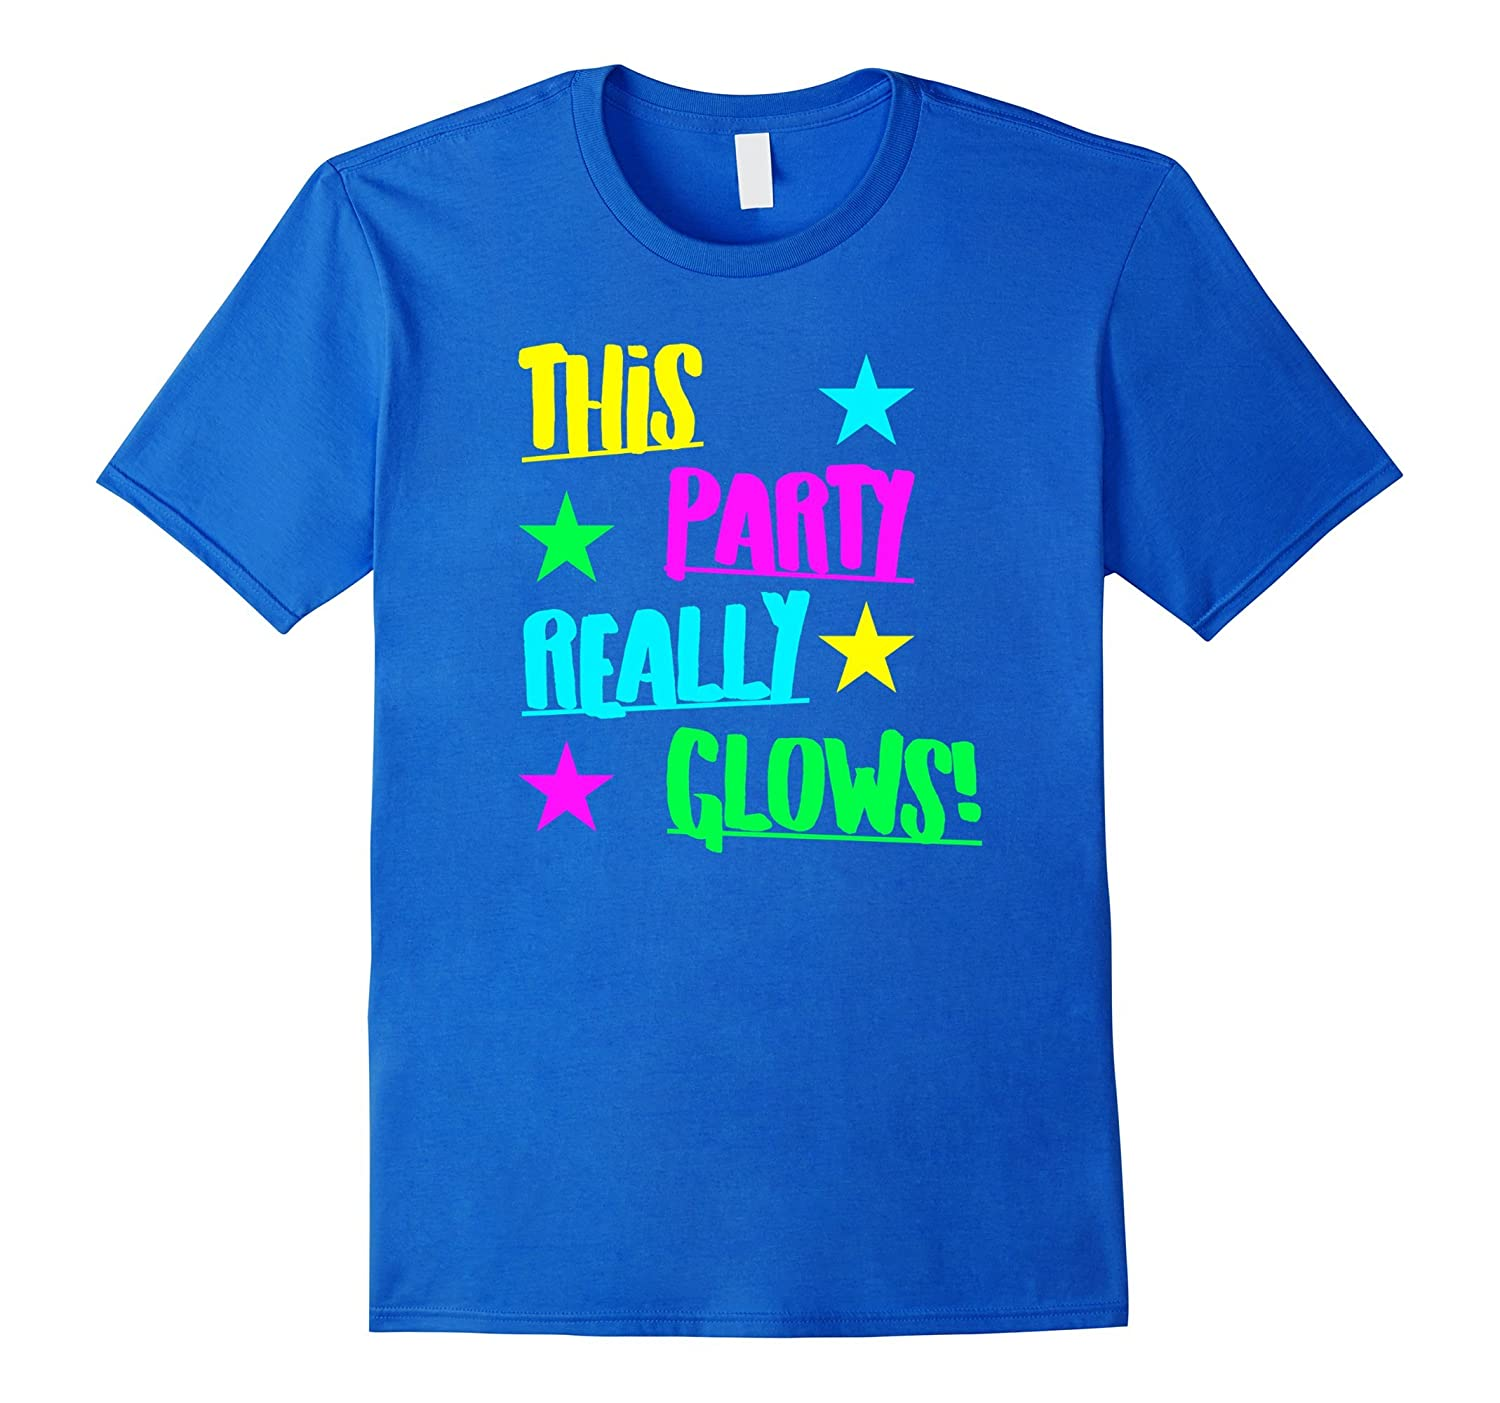 This Glow Party Really Glows Kids Birthday Gift T Shirt ANZ